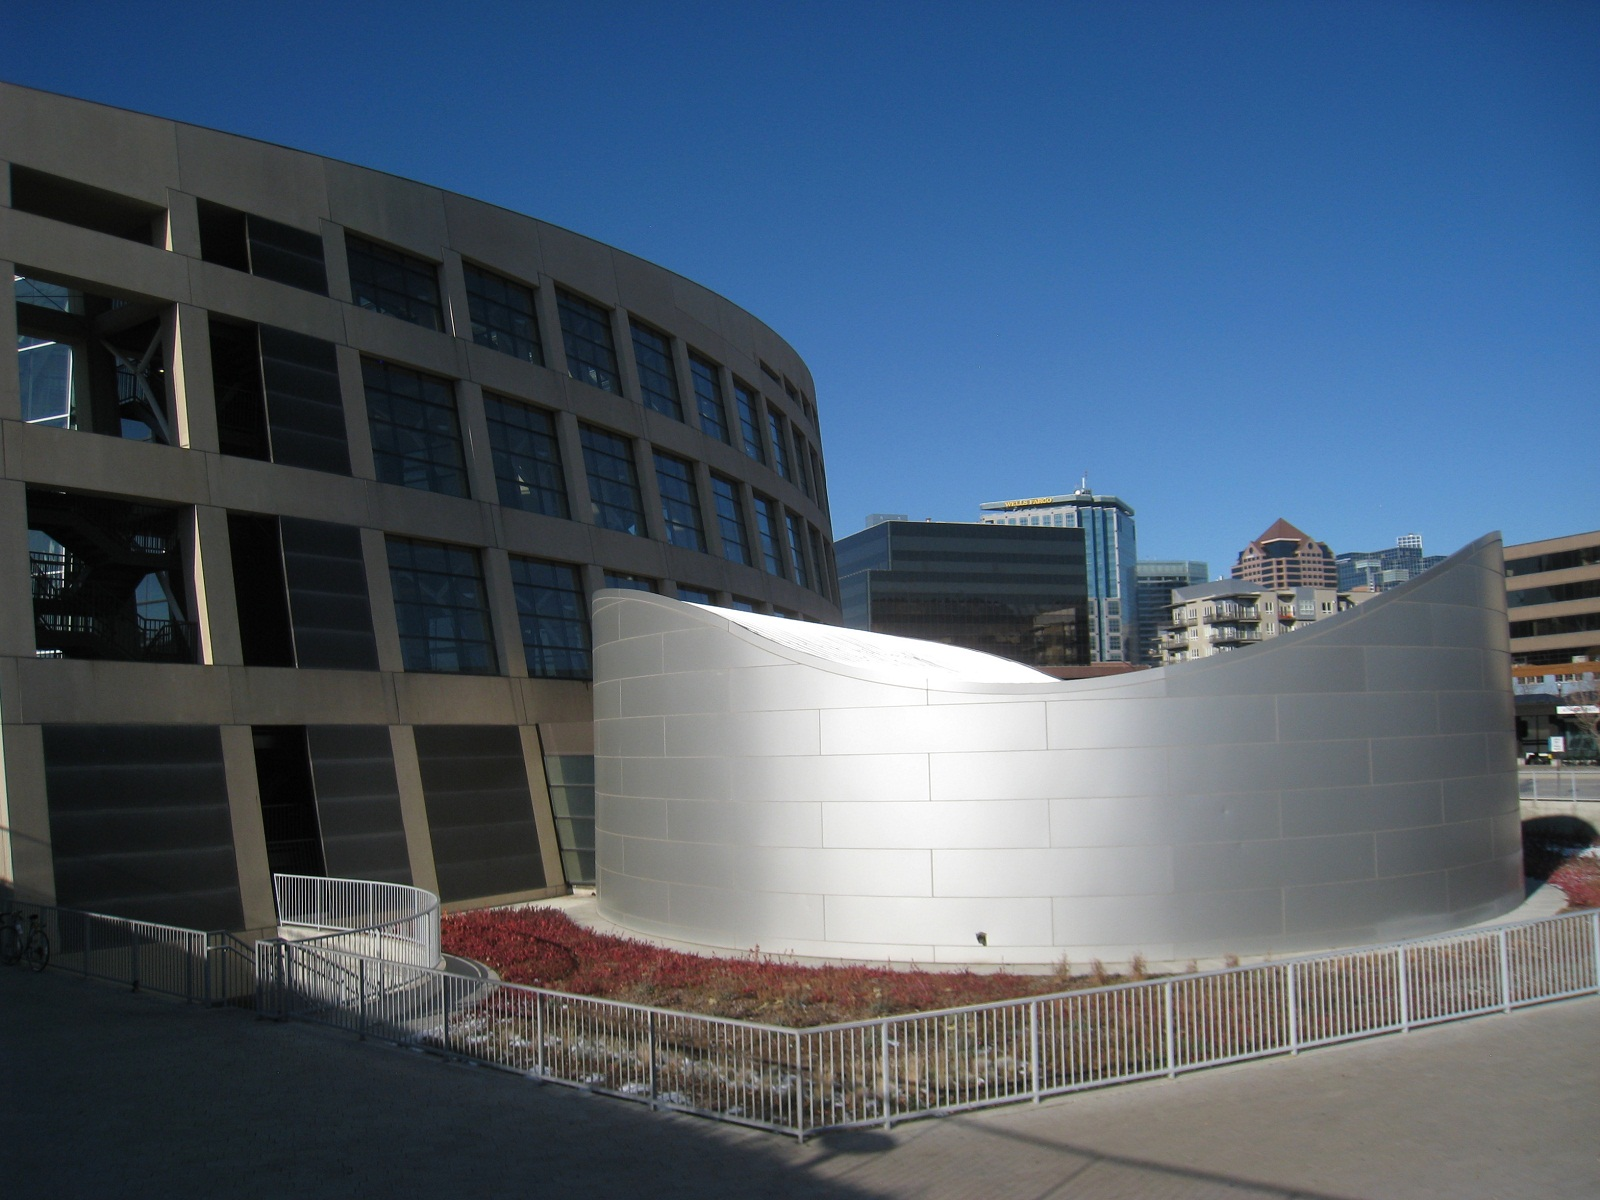 Salt Lake City, USA, Public Library side view